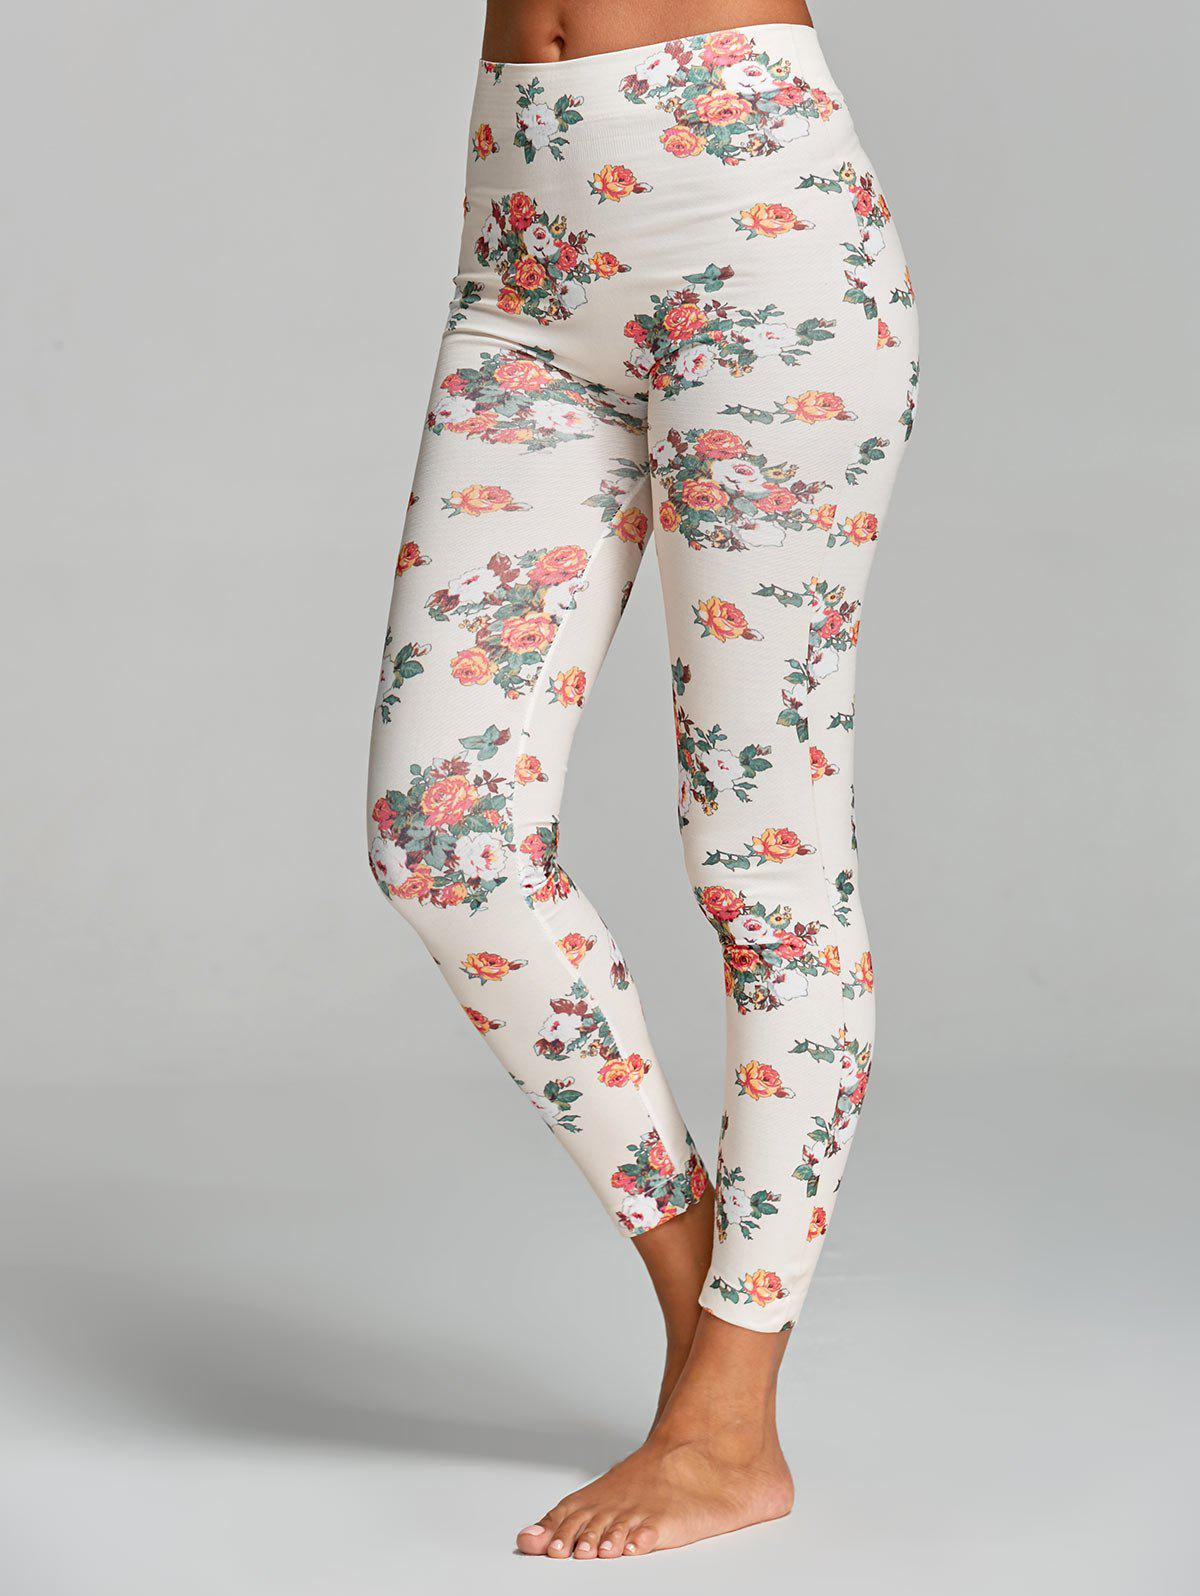 Floral Printed High Waist Yoga LeggingsWOMEN<br><br>Size: ONE SIZE; Color: WHITE; Style: Active; Length: Normal; Material: Polyester; Fit Type: Skinny; Waist Type: High; Closure Type: Elastic Waist; Pattern Type: Floral; Pant Style: Pencil Pants; Elasticity: Elastic; Weight: 0.1600kg; Package Contents: 1 x Leggings;